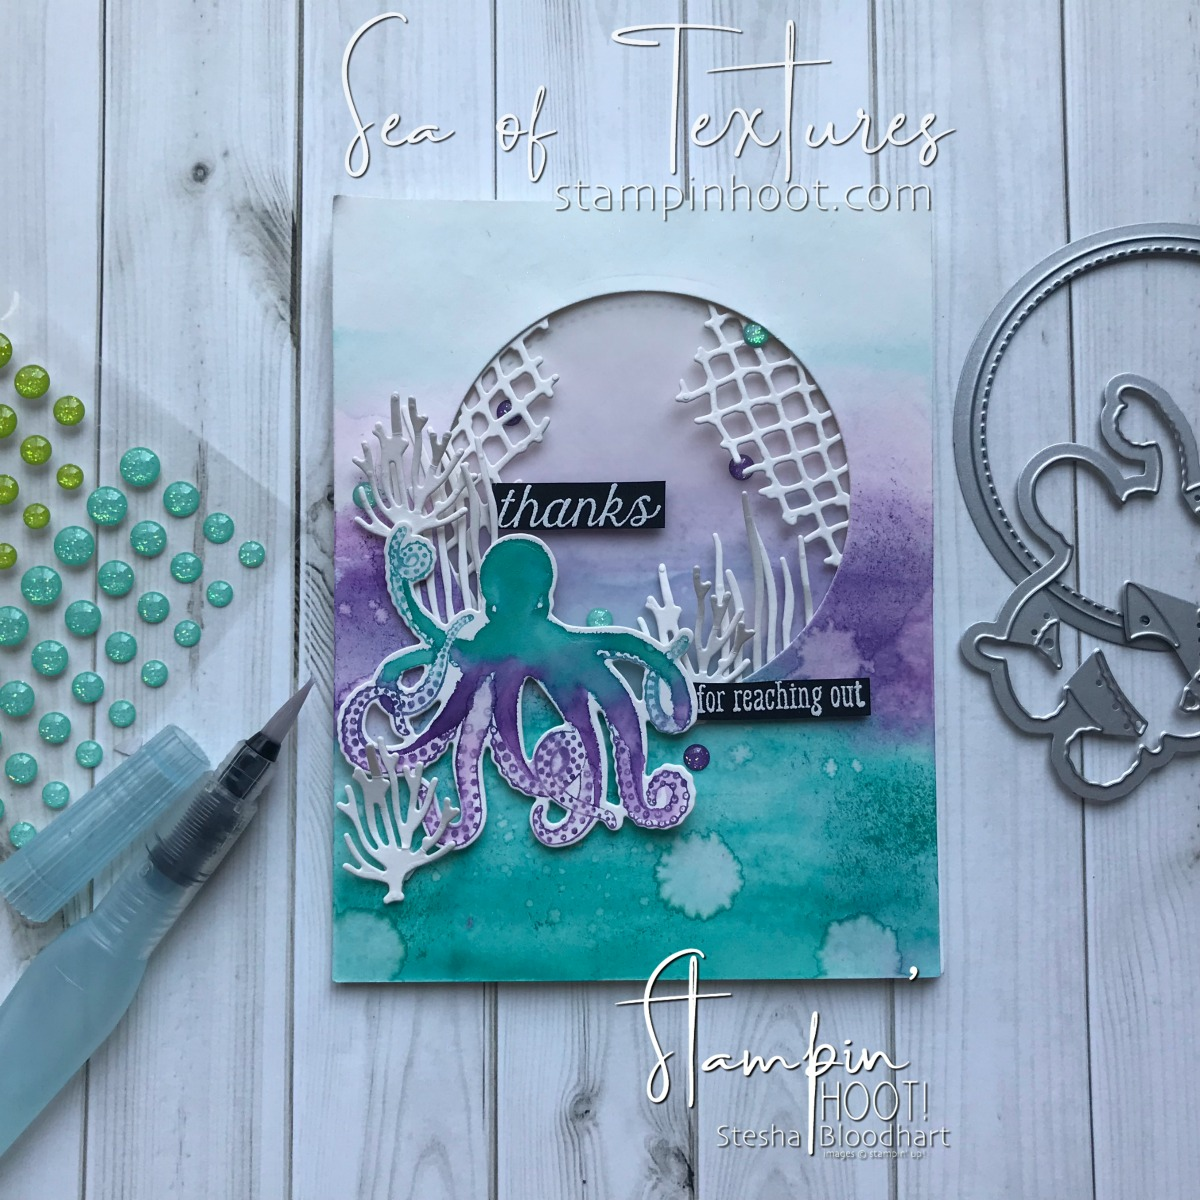 Sea of Textures Thank You Card for #gdp151 Theme Challenge. Handmade Card by Stesha Bloodhart, Stampin' Hoot! #steshabloodhart #stampinhoot